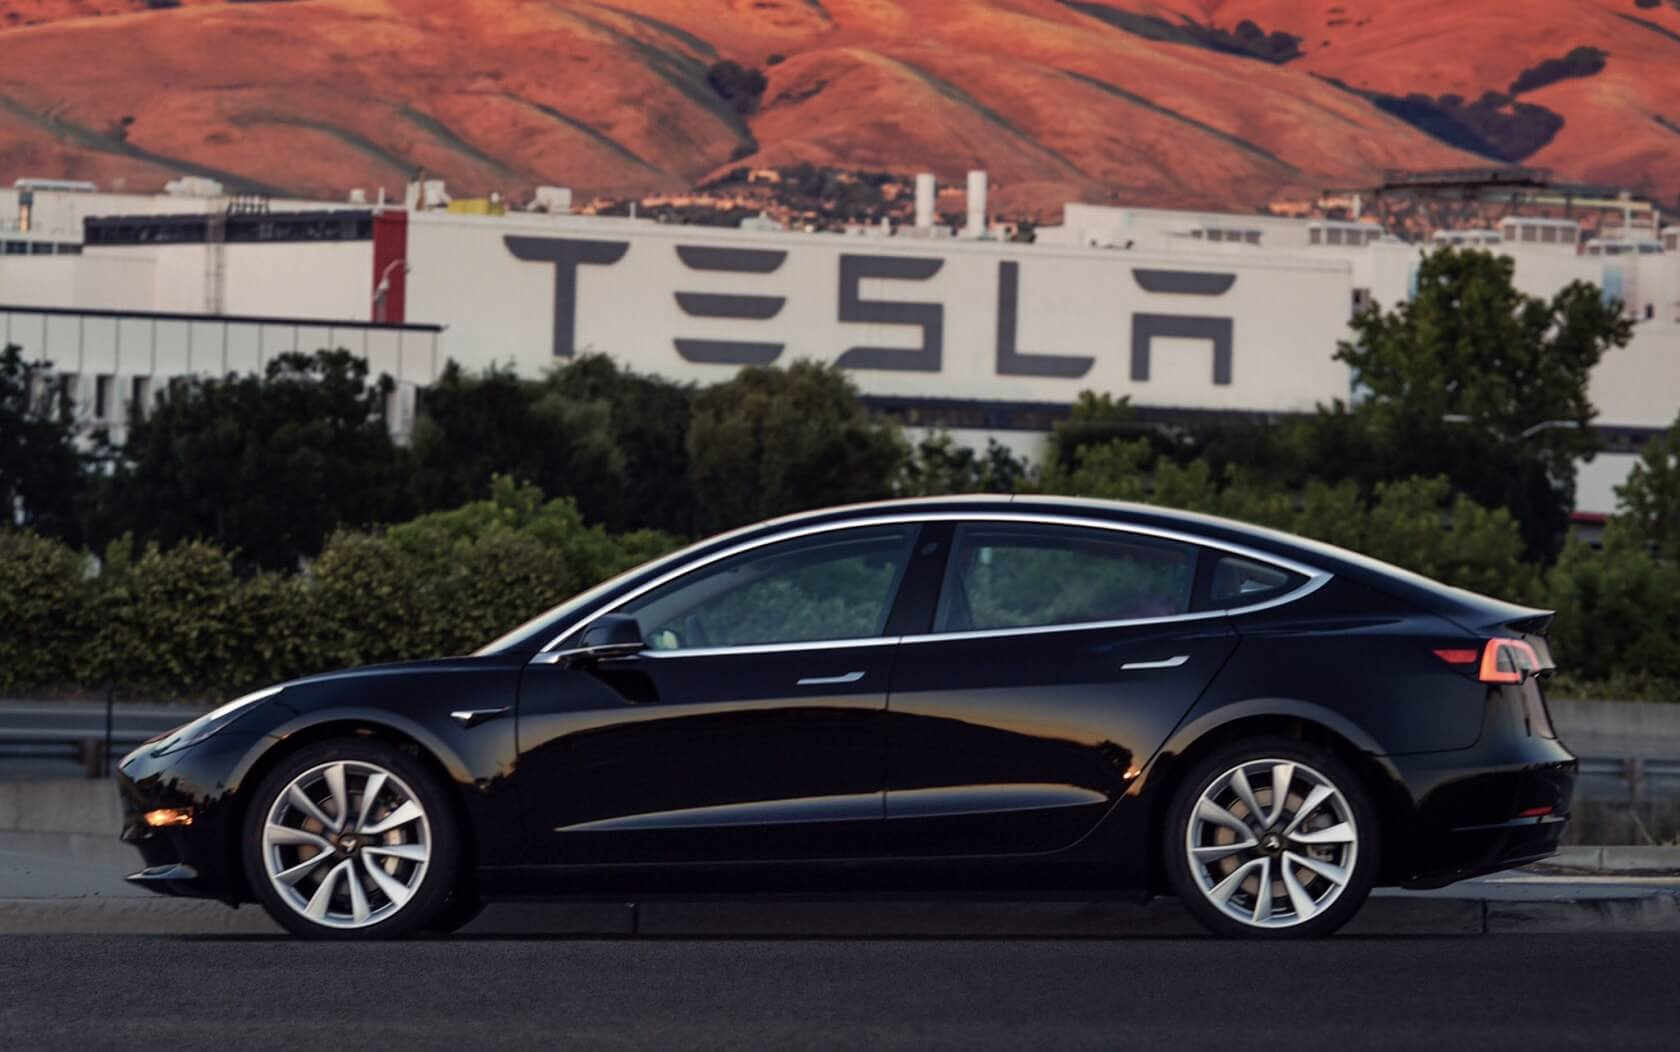 Tesla will take on roughly $2 billion in debt to pad its low cash reserves